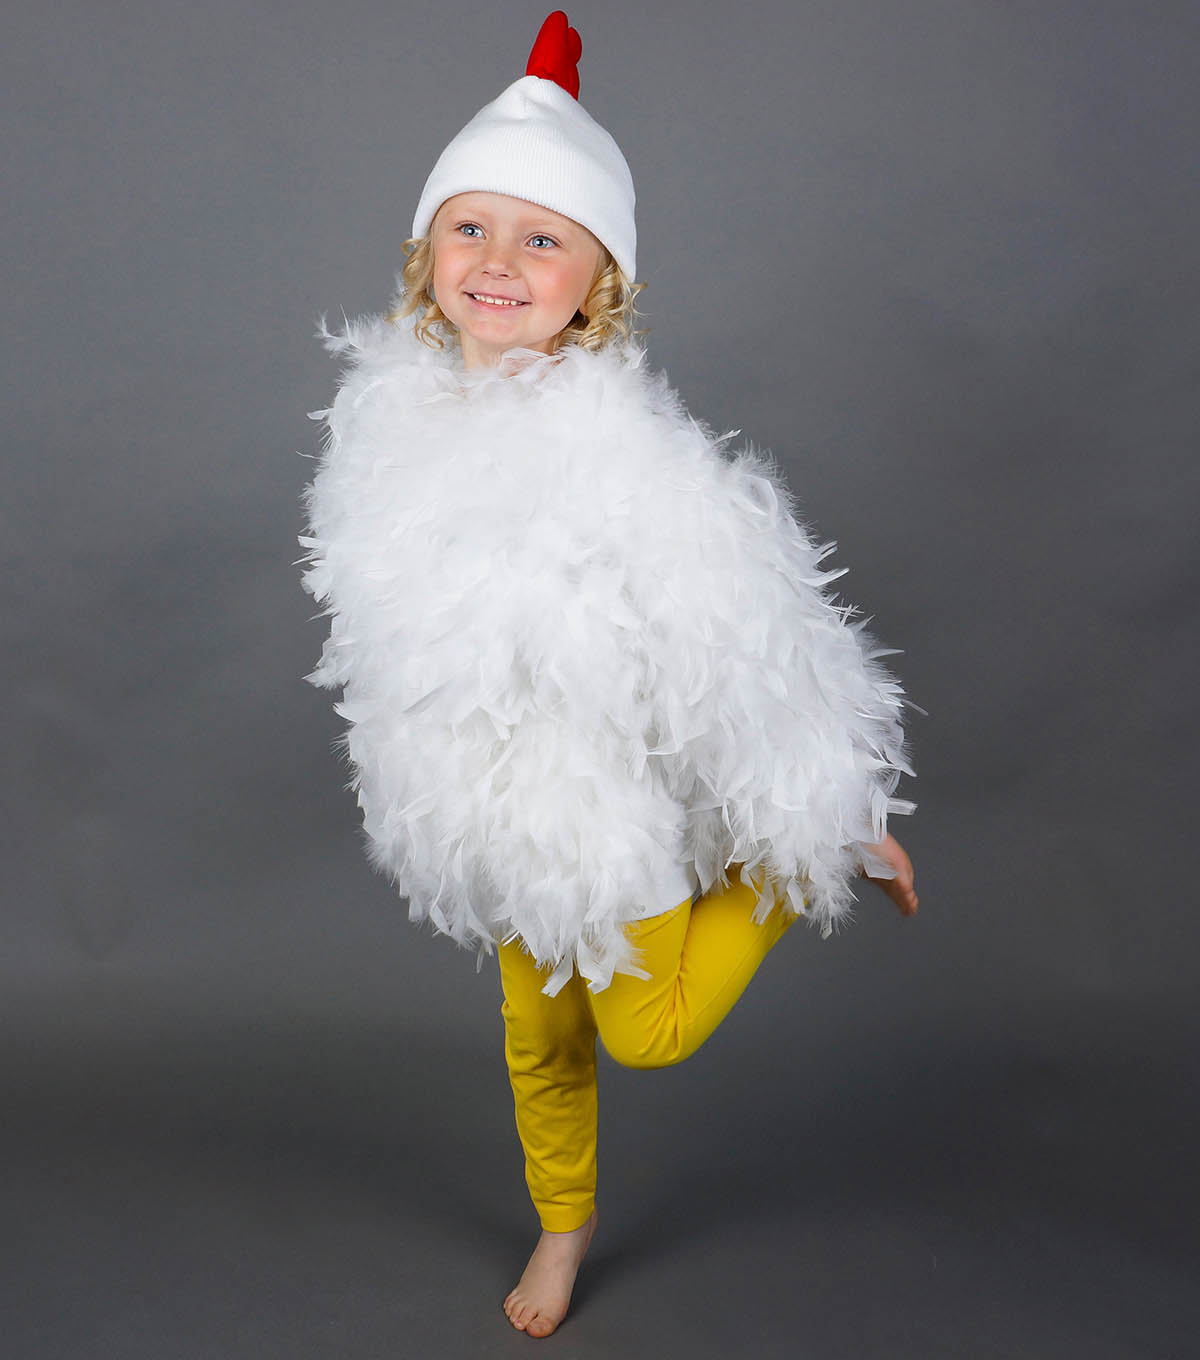 How To Make A Cute Chicken Costume  sc 1 st  Joann & How To Make A Cute Chicken Costume | JOANN